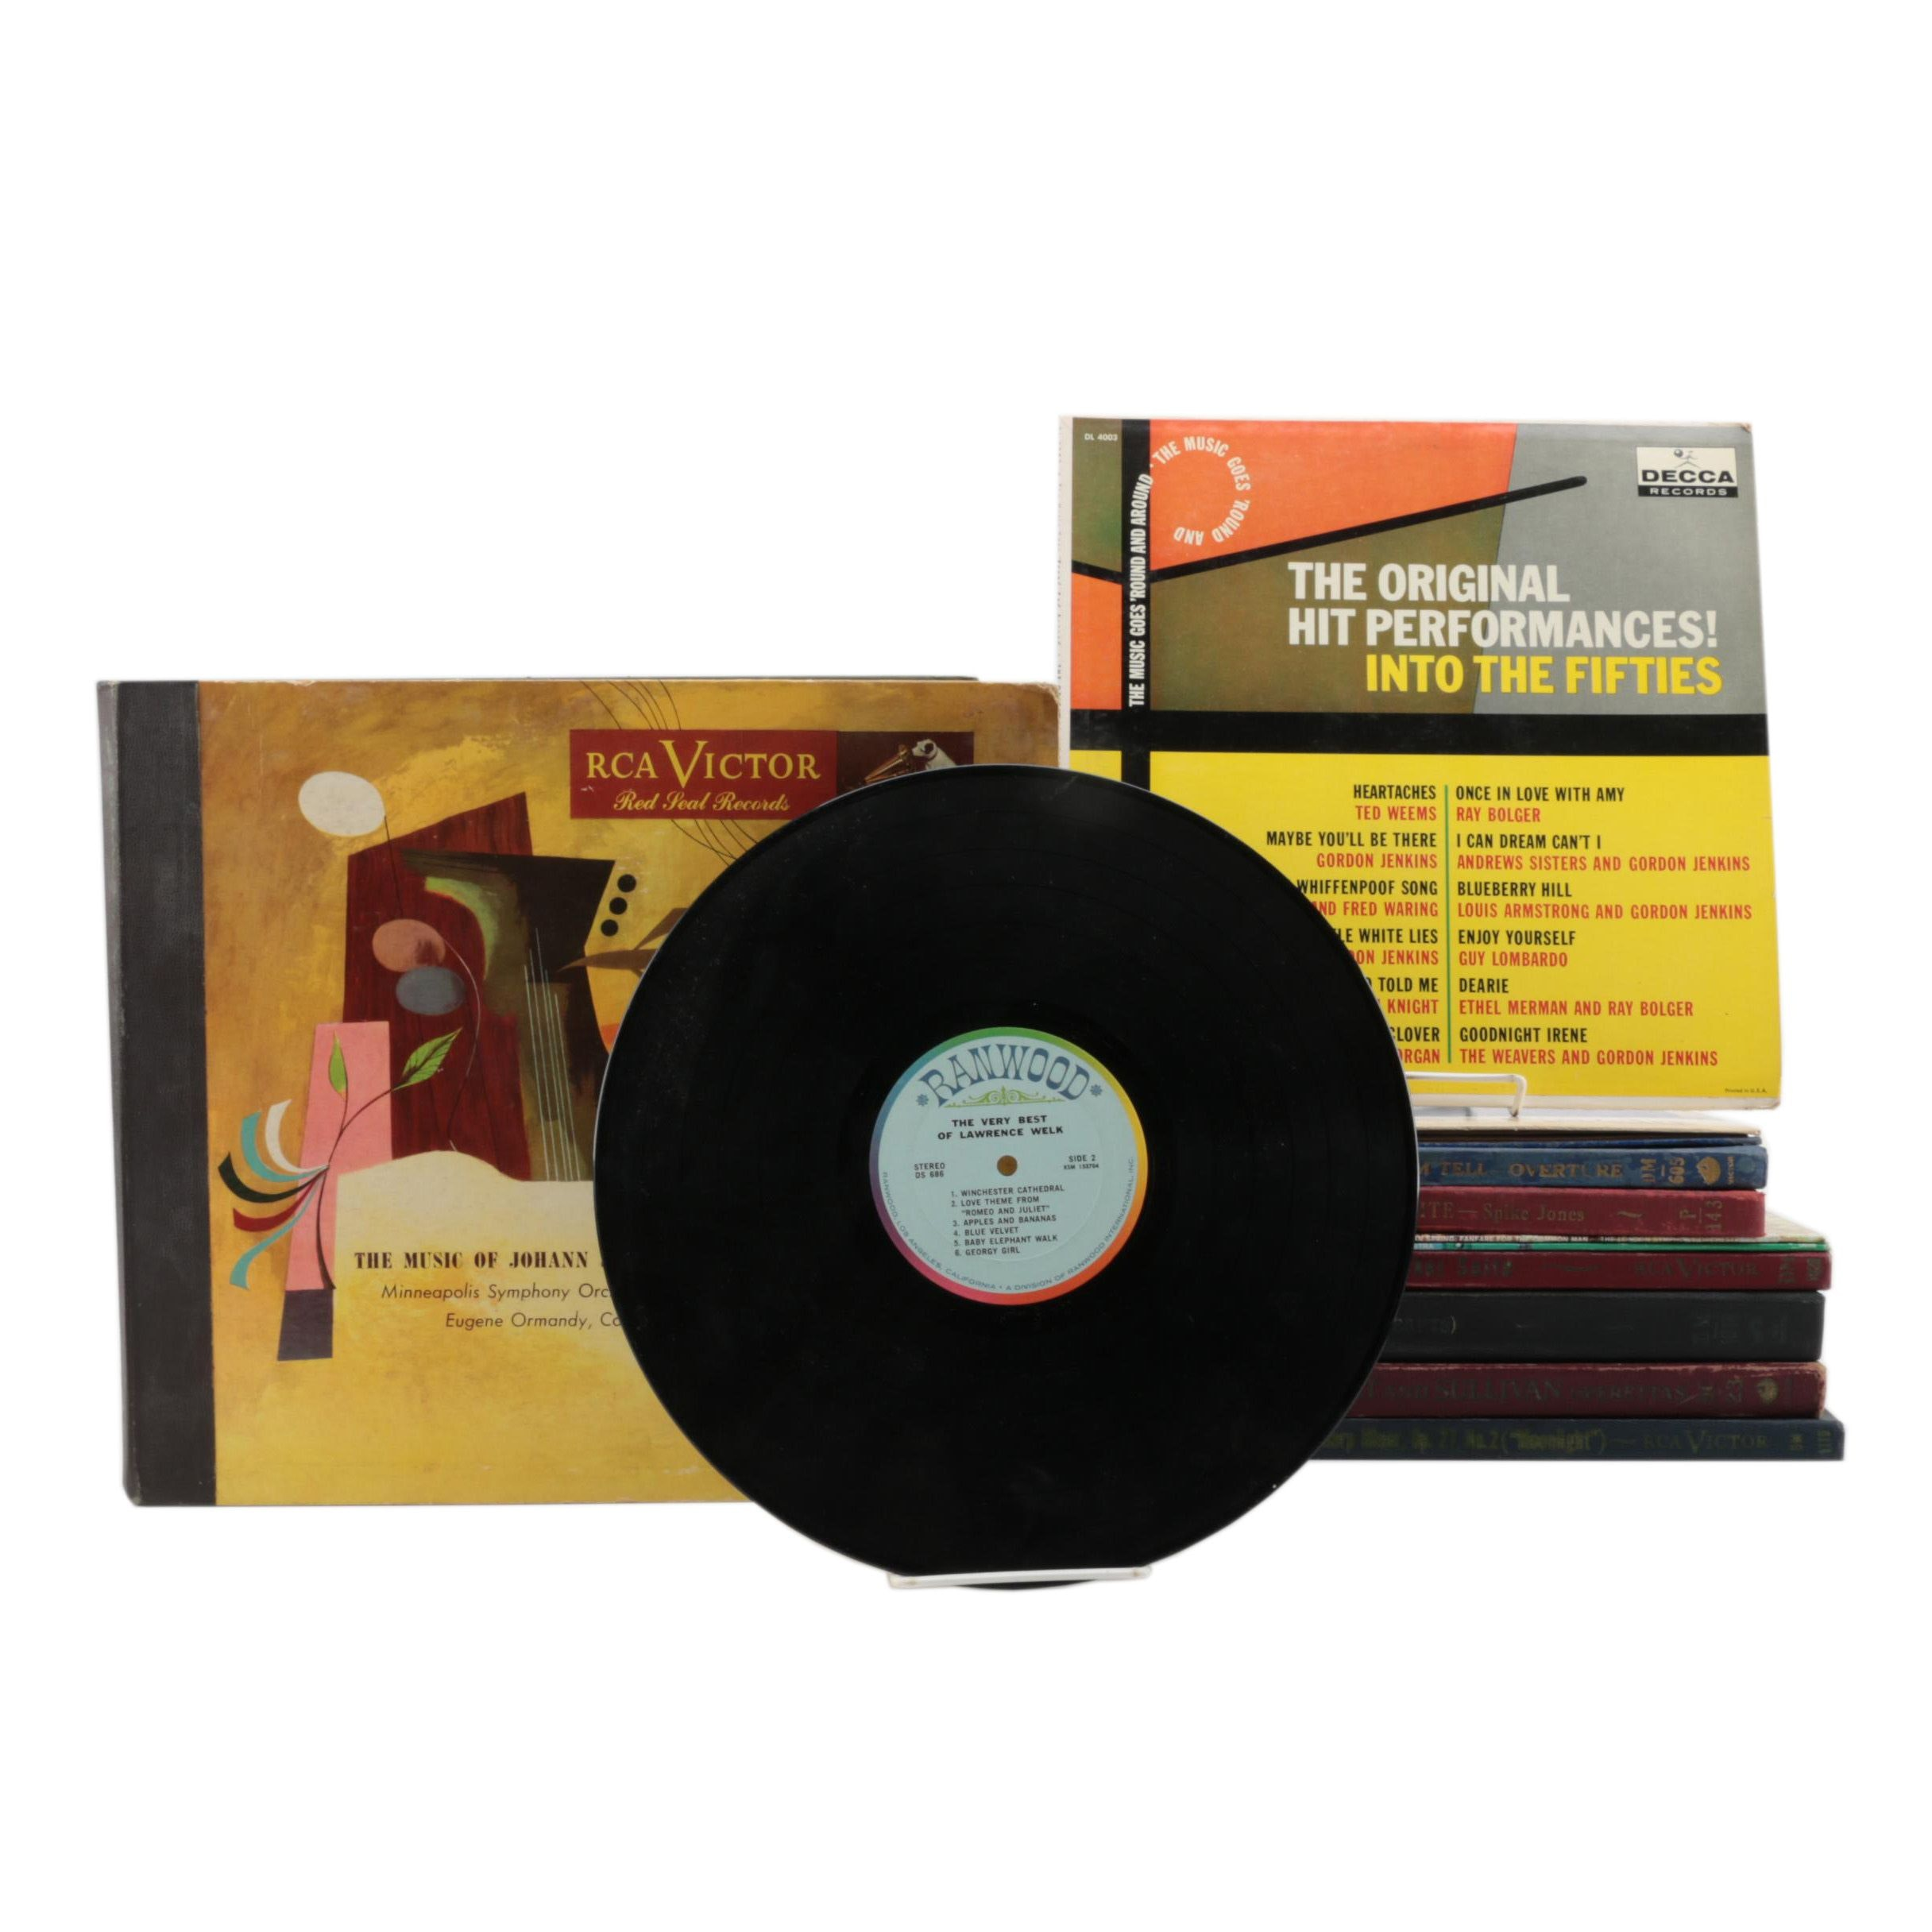 Vintage 78 RPM and LP Pop and Classical Records